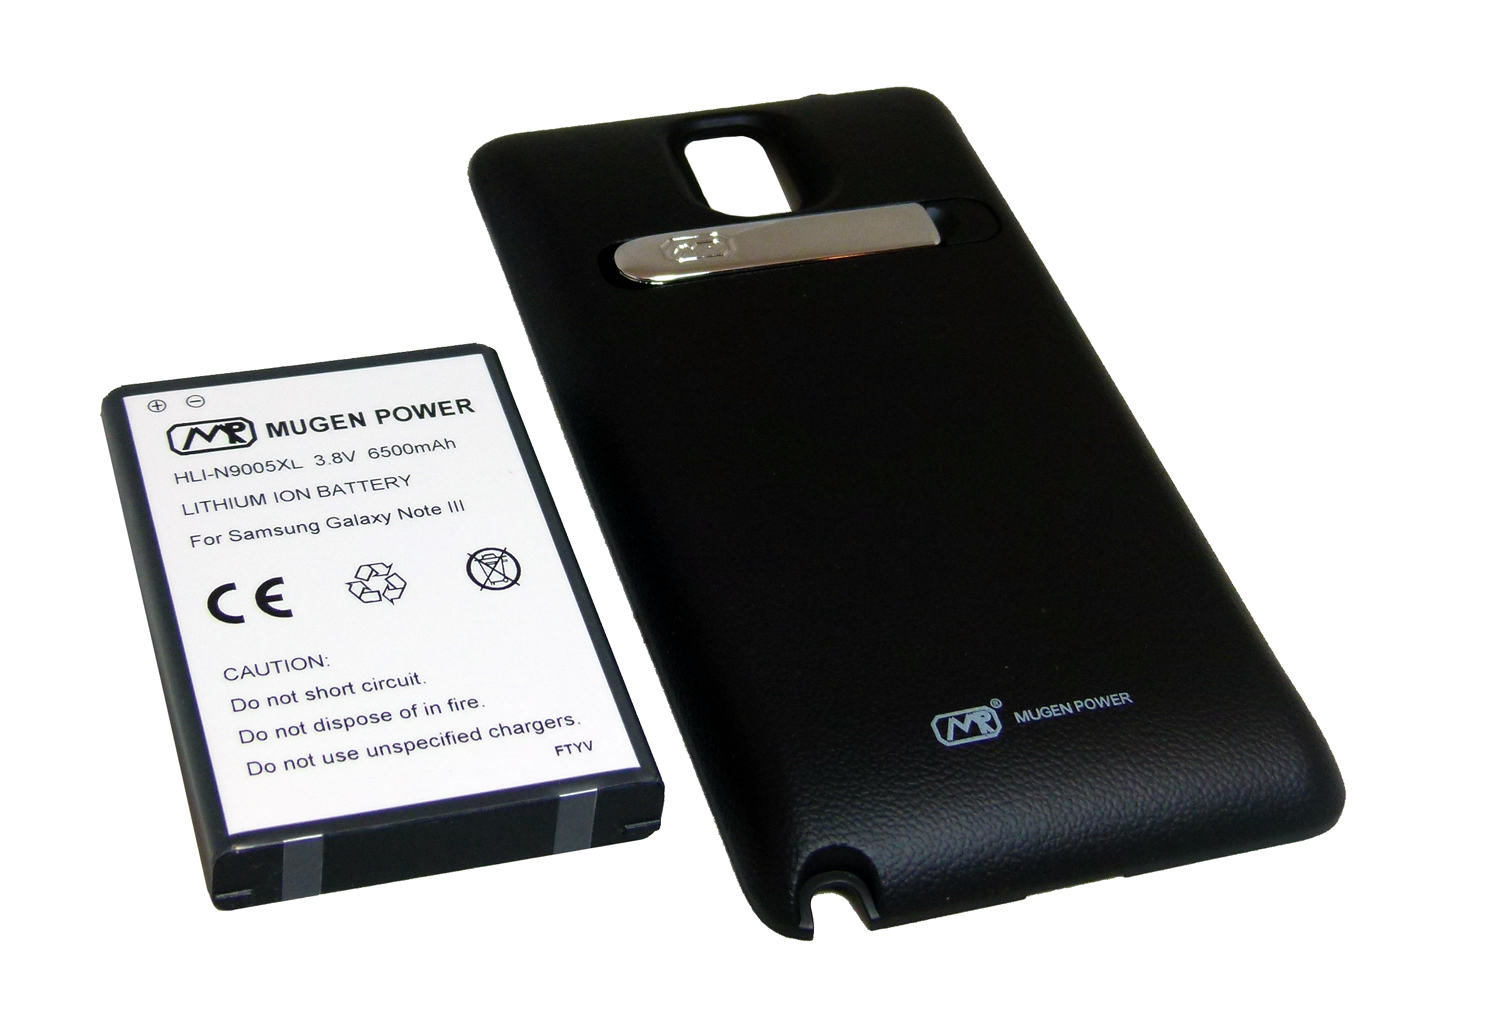 mugen power extended 6500mah battery for samsung galaxy note 3. Black Bedroom Furniture Sets. Home Design Ideas